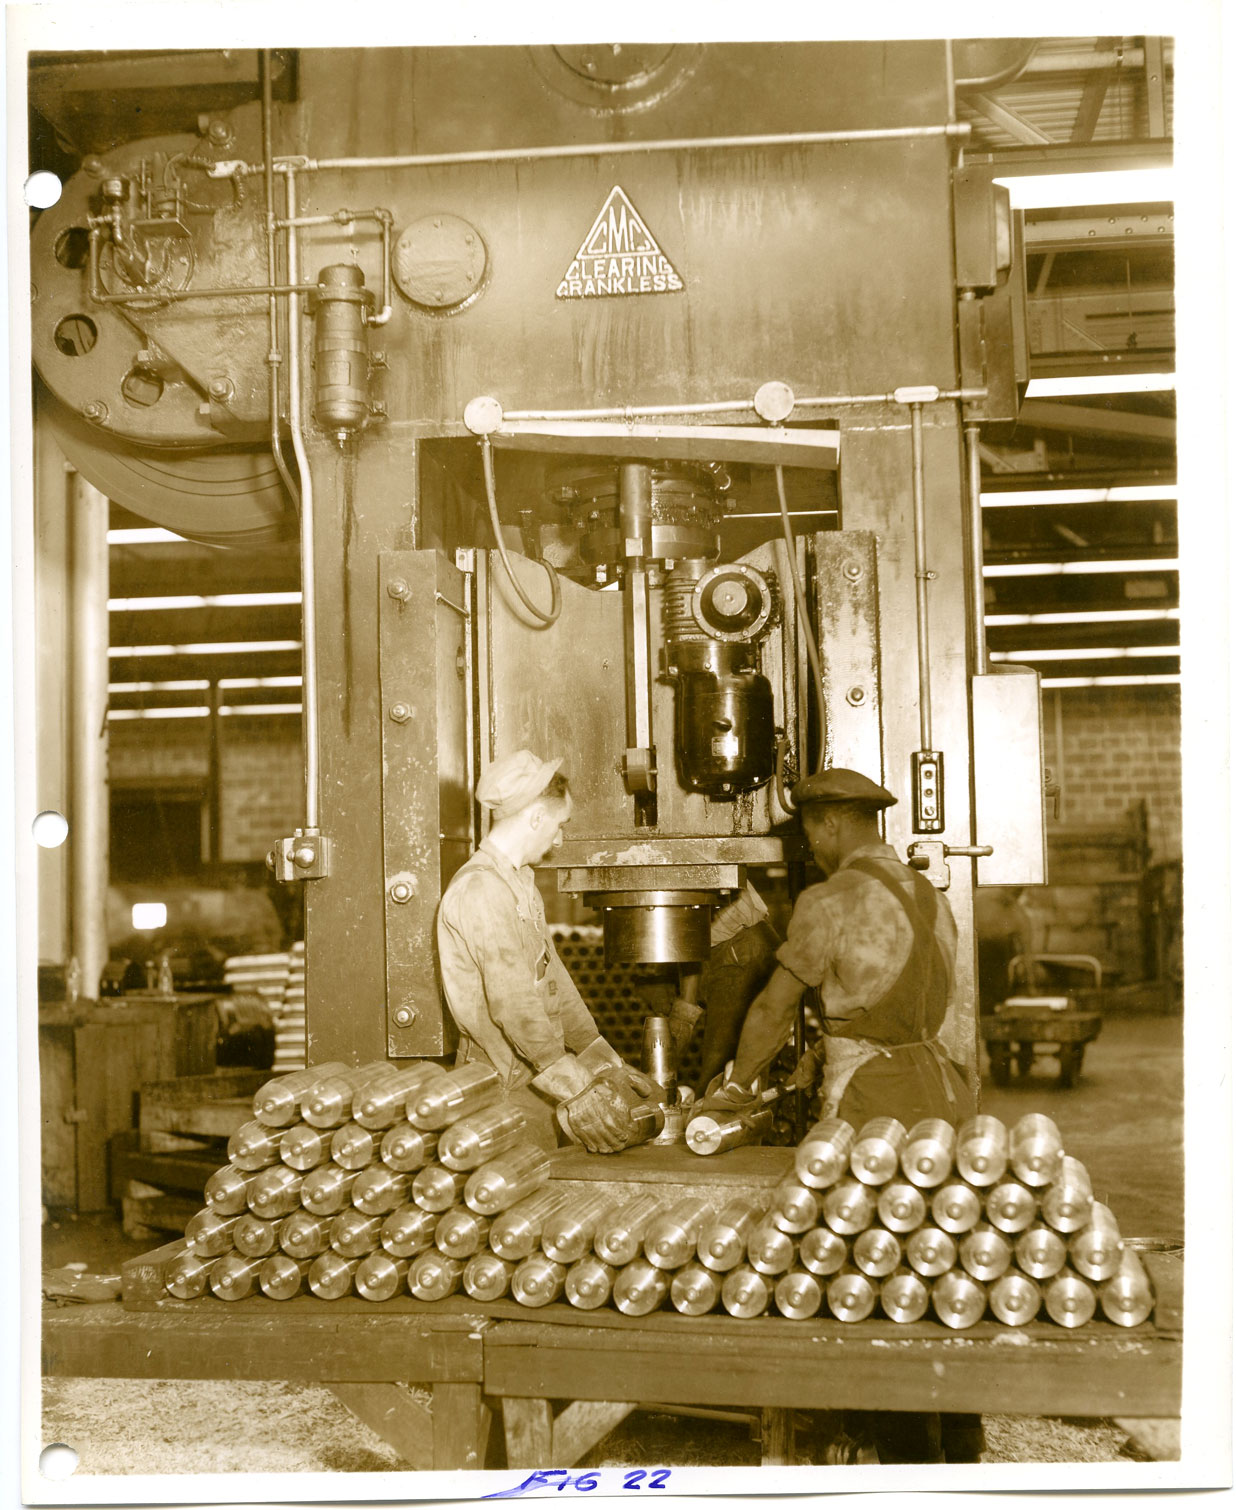 A white employee and a black employee work together at a machine press while manufacturing artillery shells.